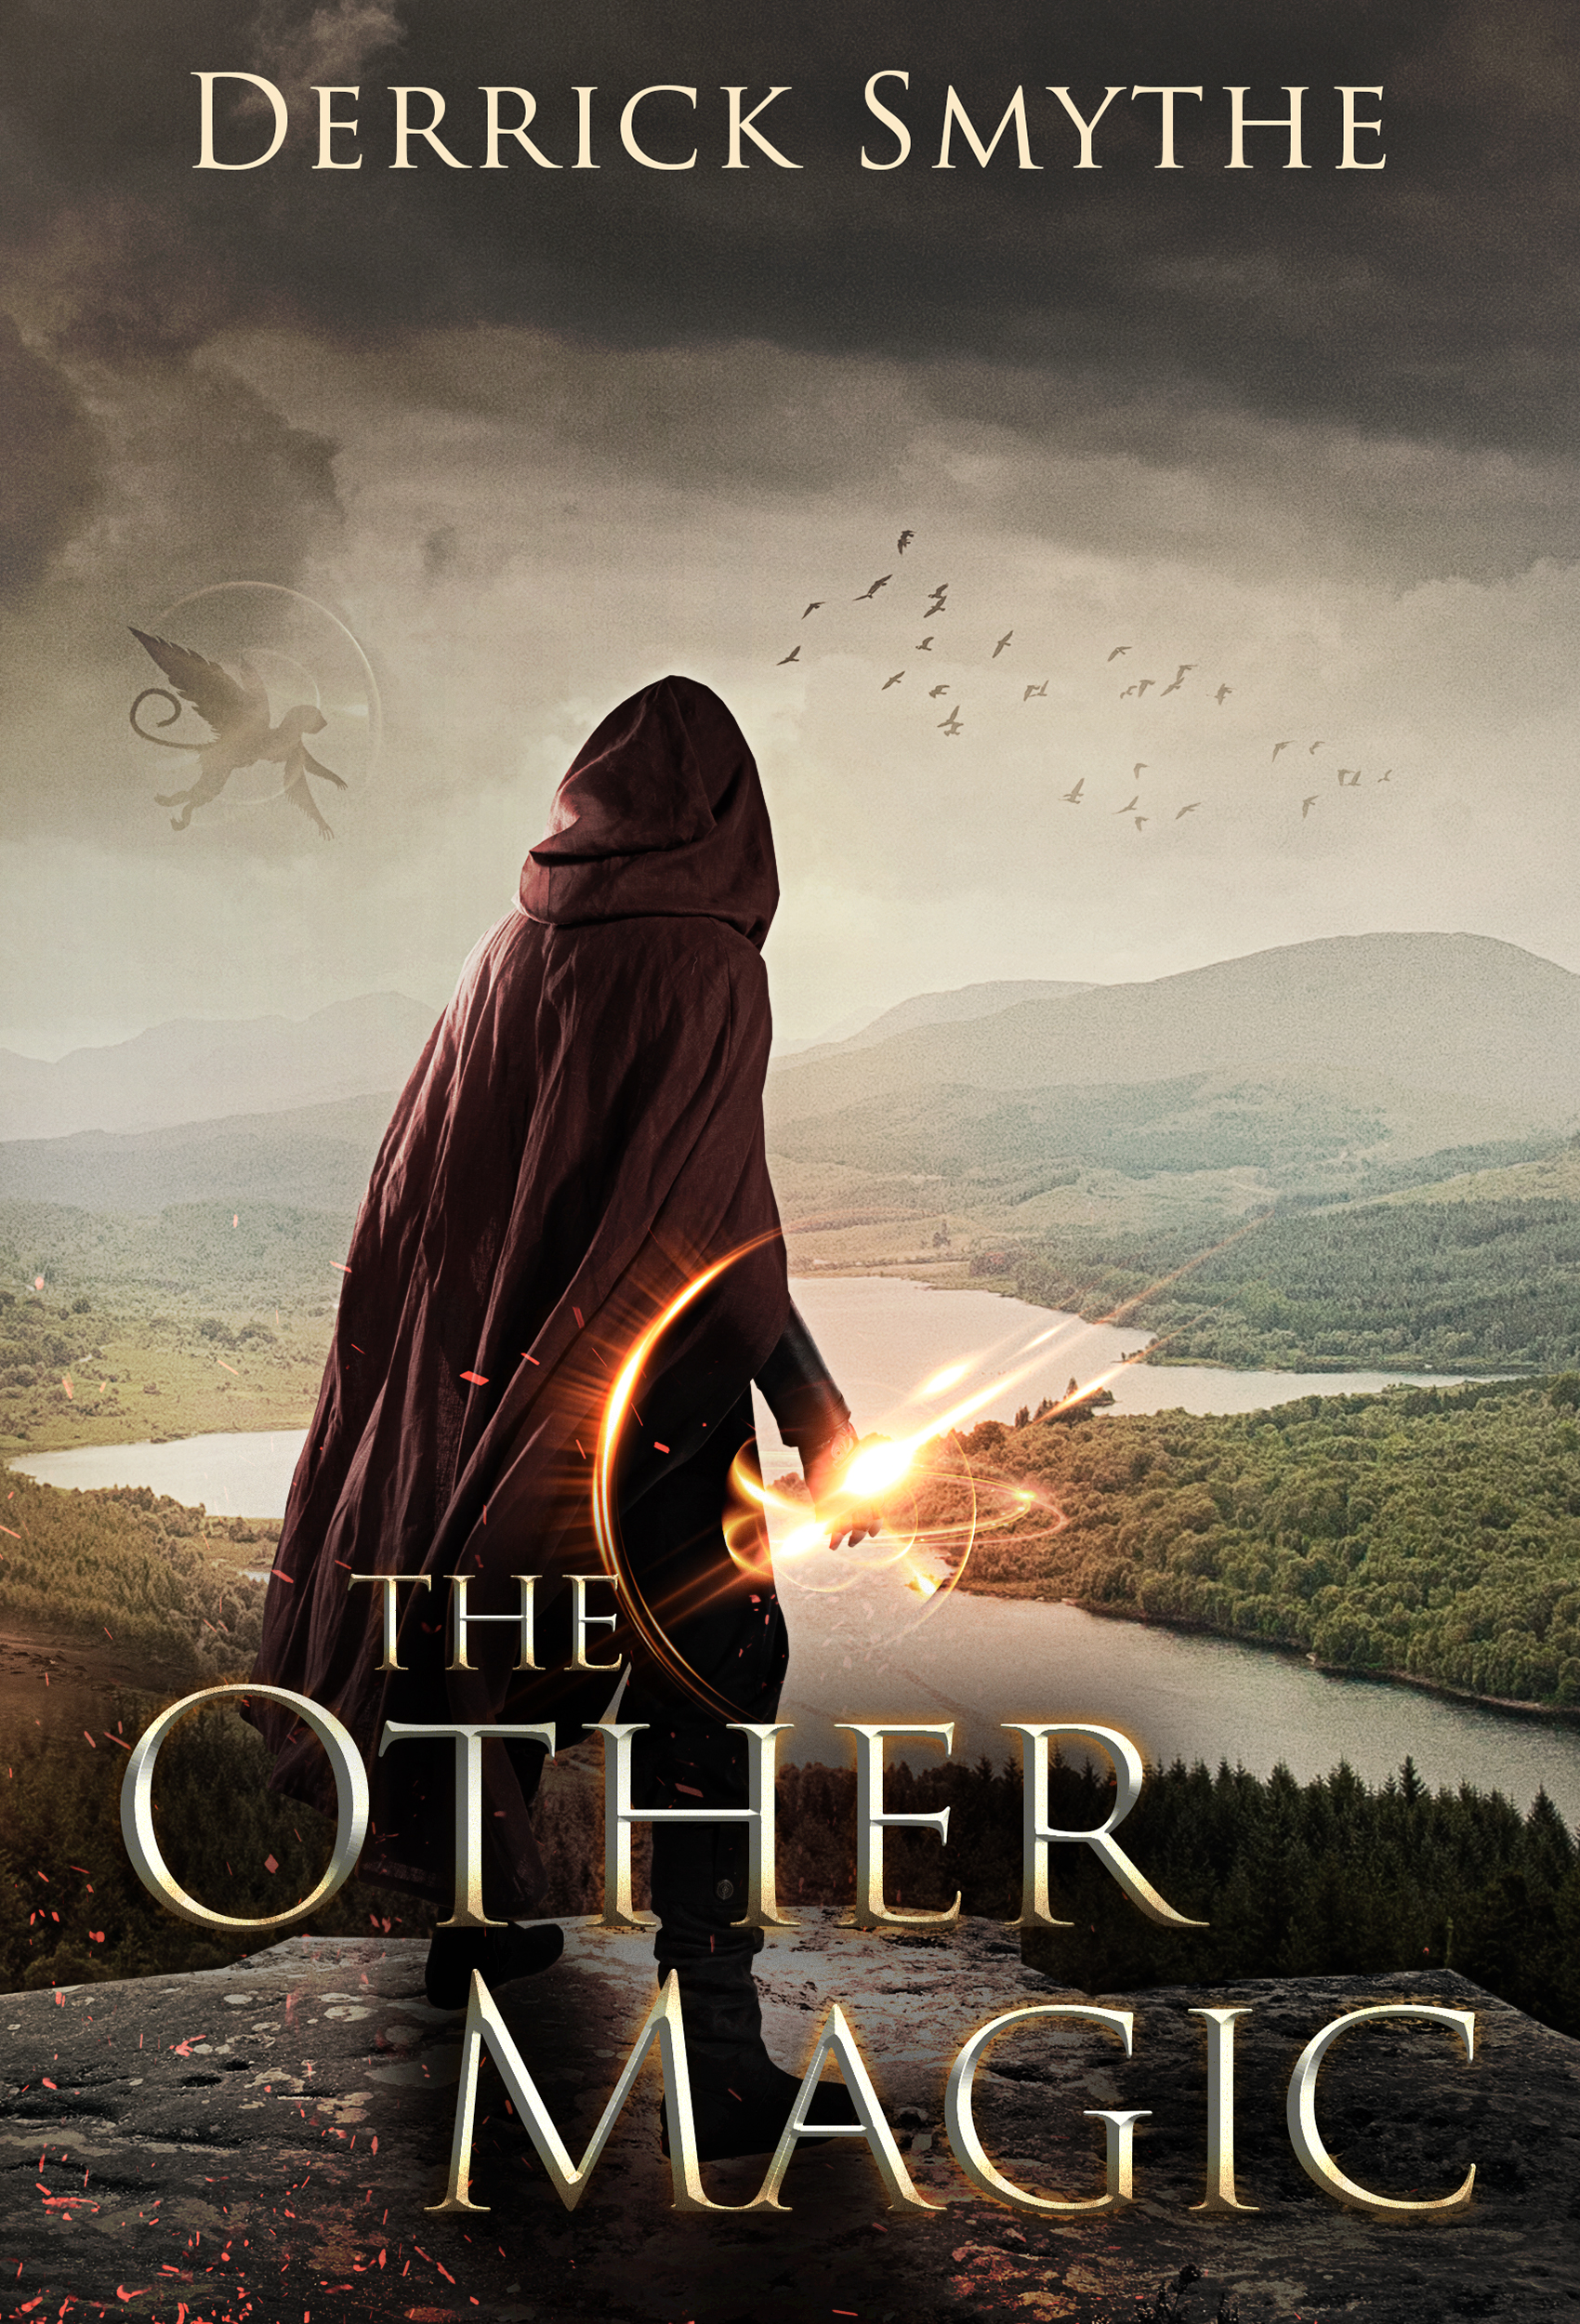 The Other Magic by Derrick Smythe – #Fantasy #Book #Review